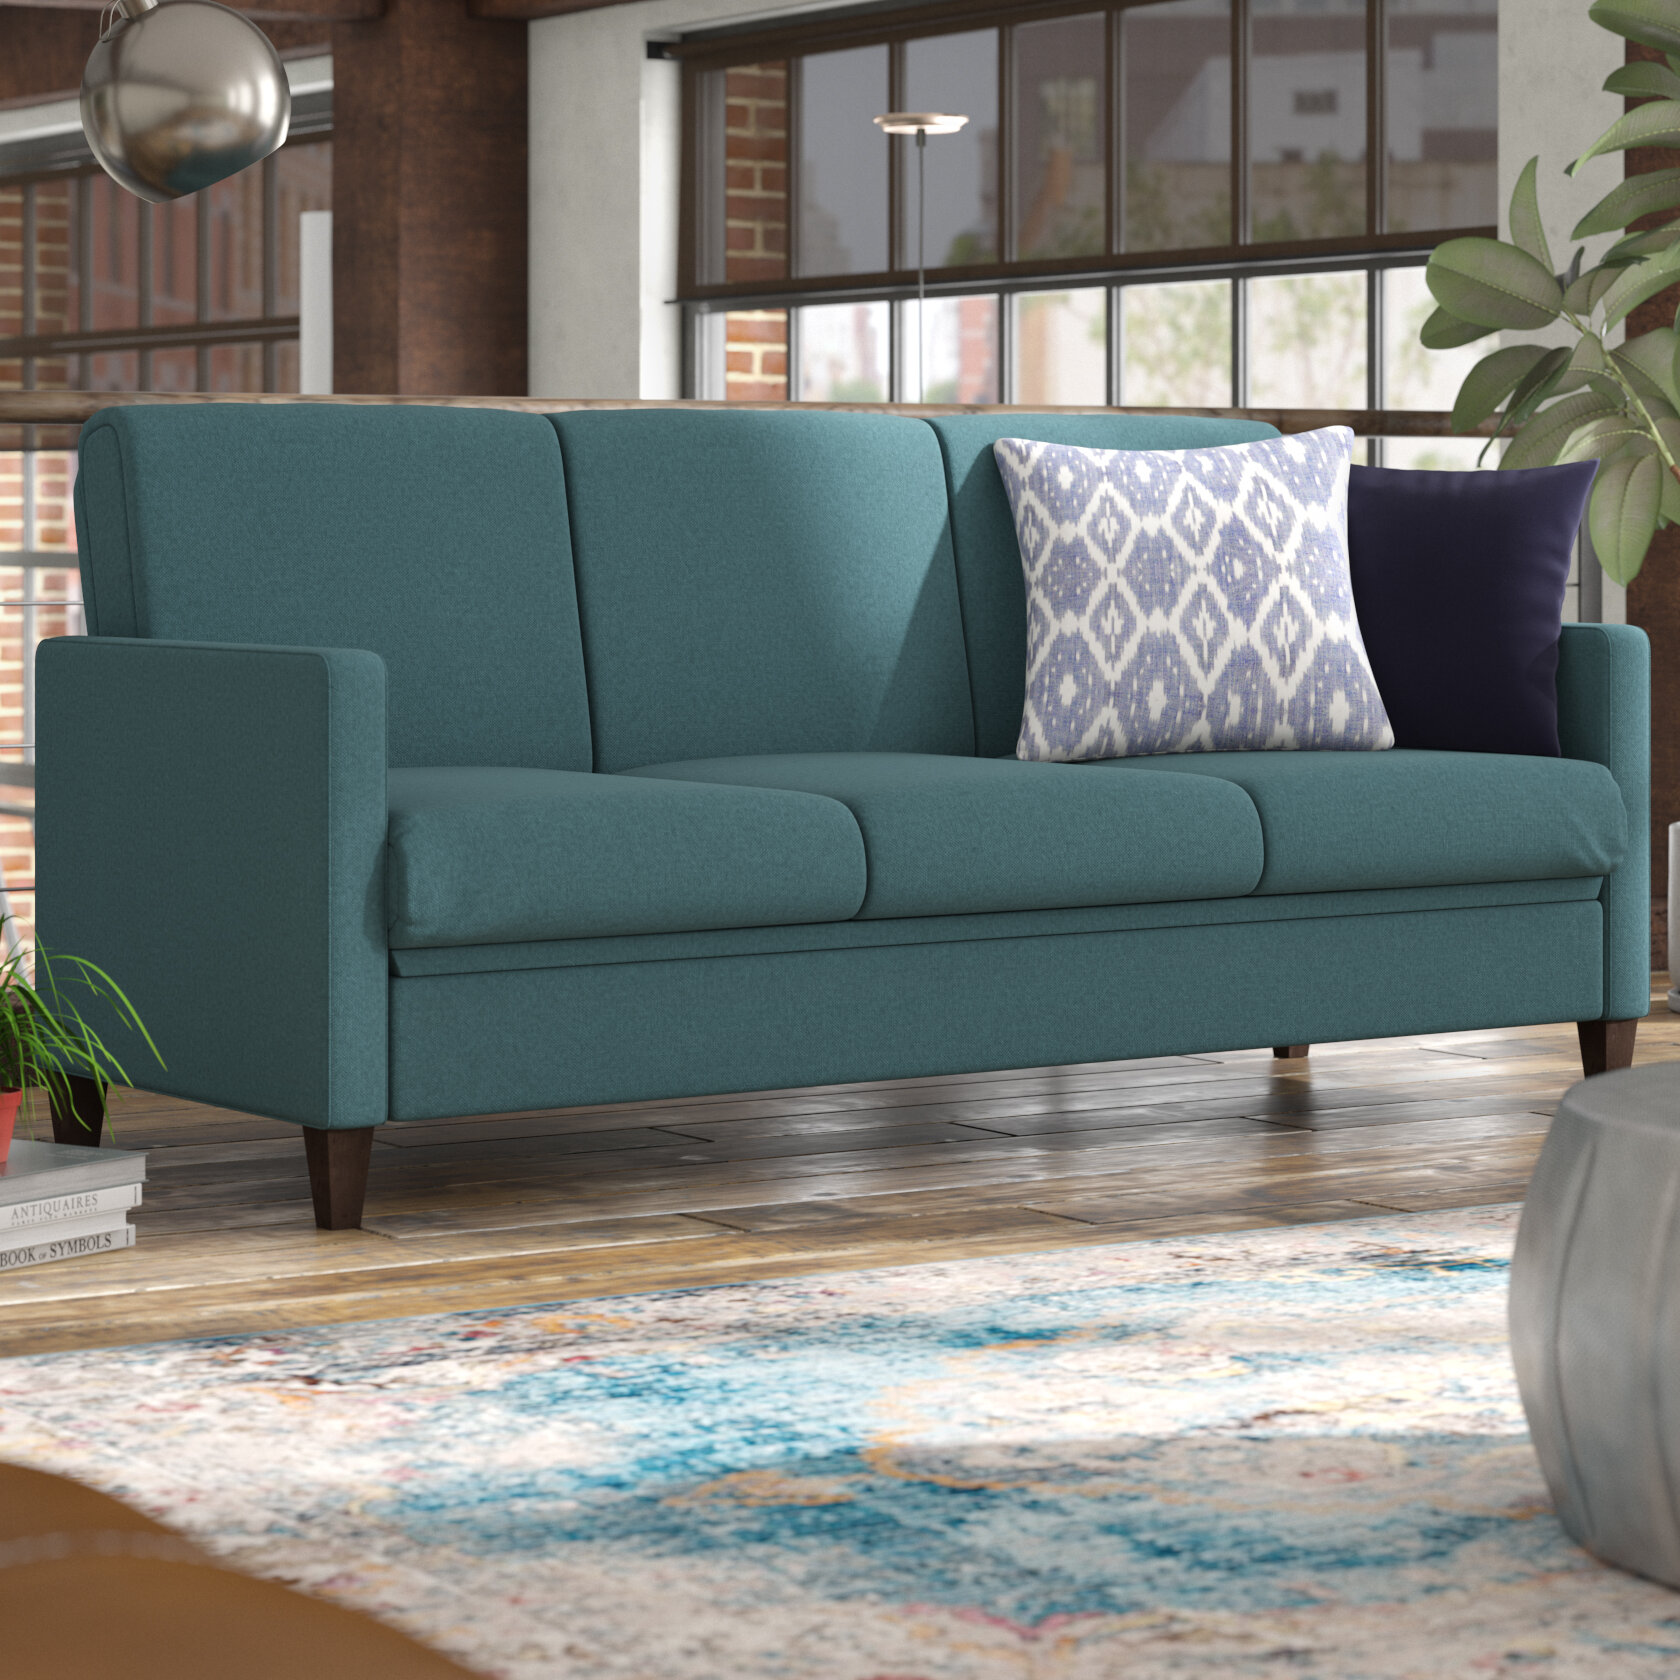 Trent Austin Design Glacier Bay Convertible Sofa U0026 Reviews | Wayfair